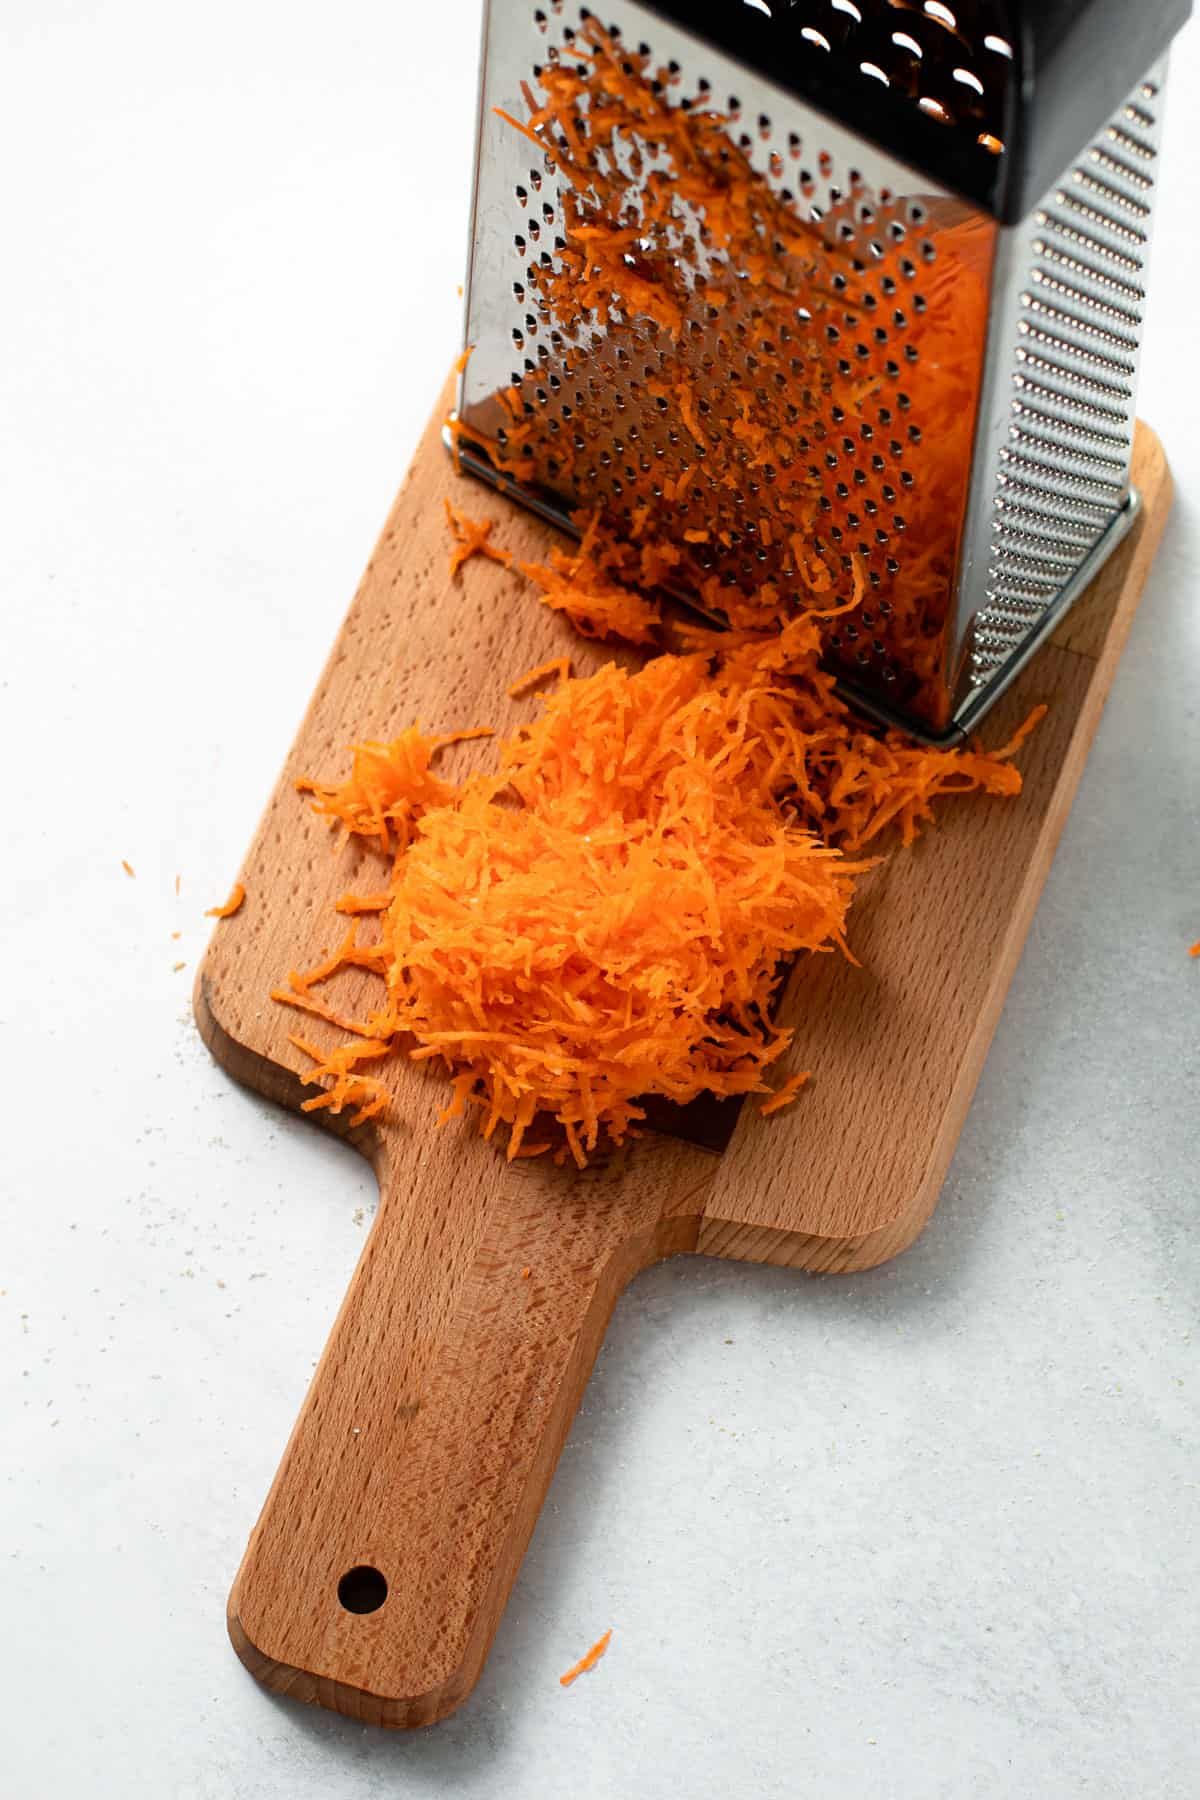 Carrots grated for baked oats.